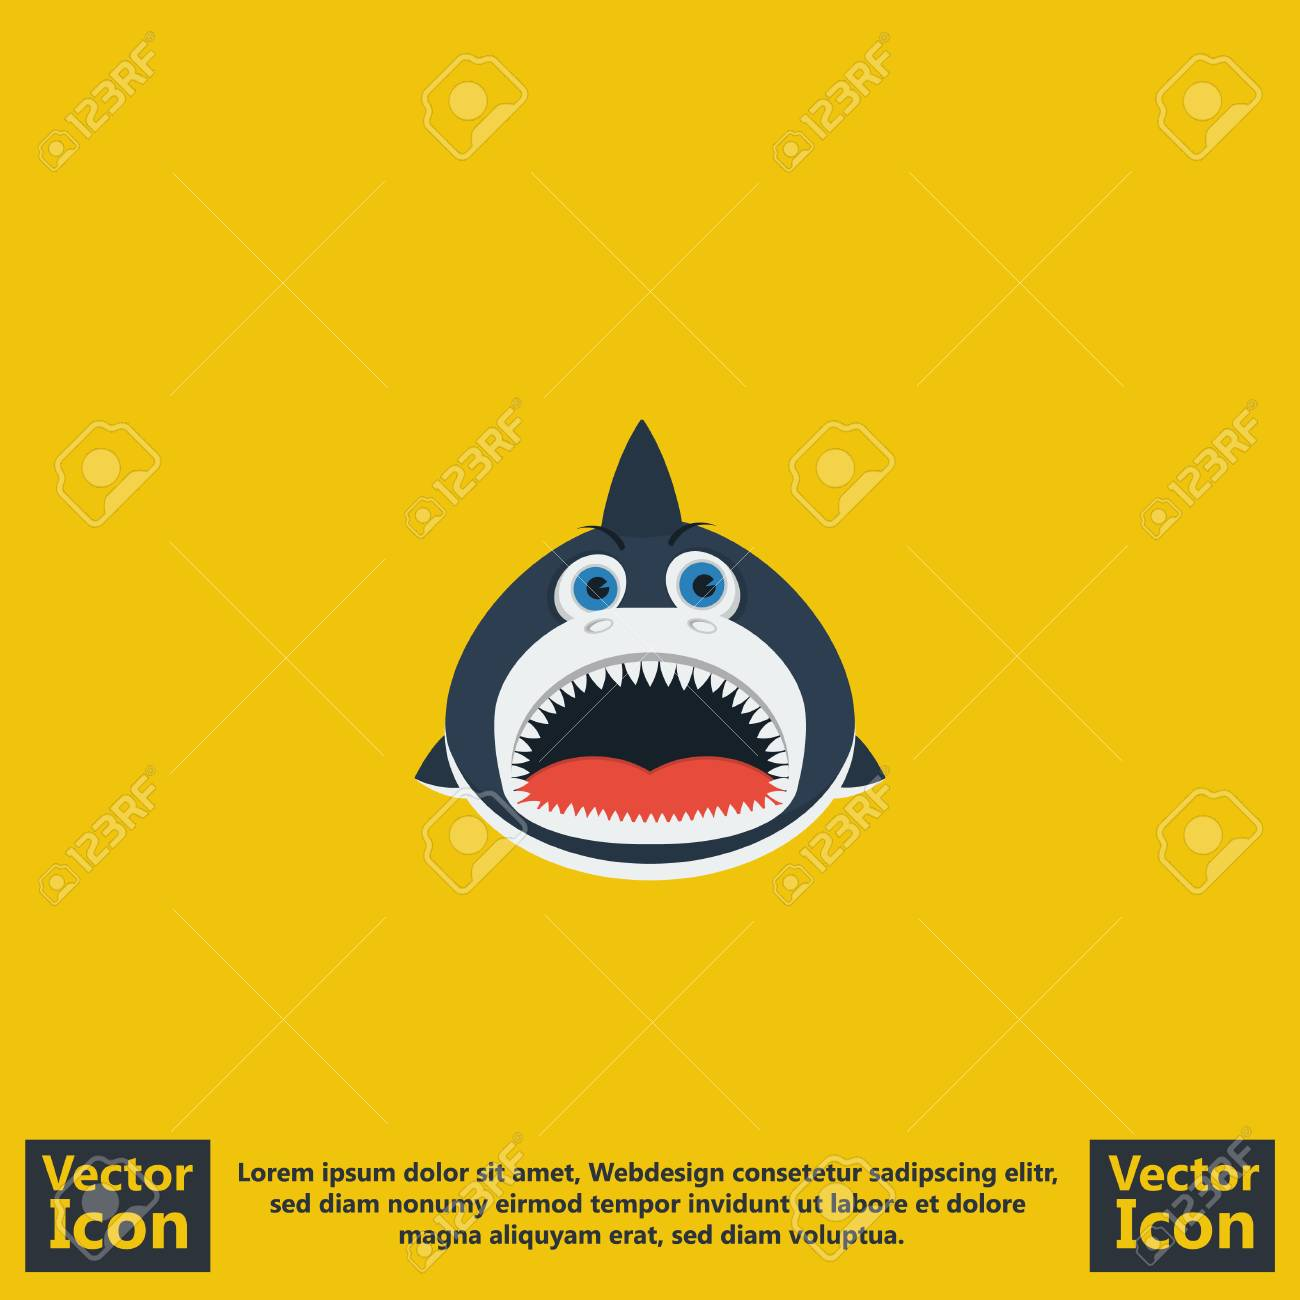 Flat style icon with shark symbol